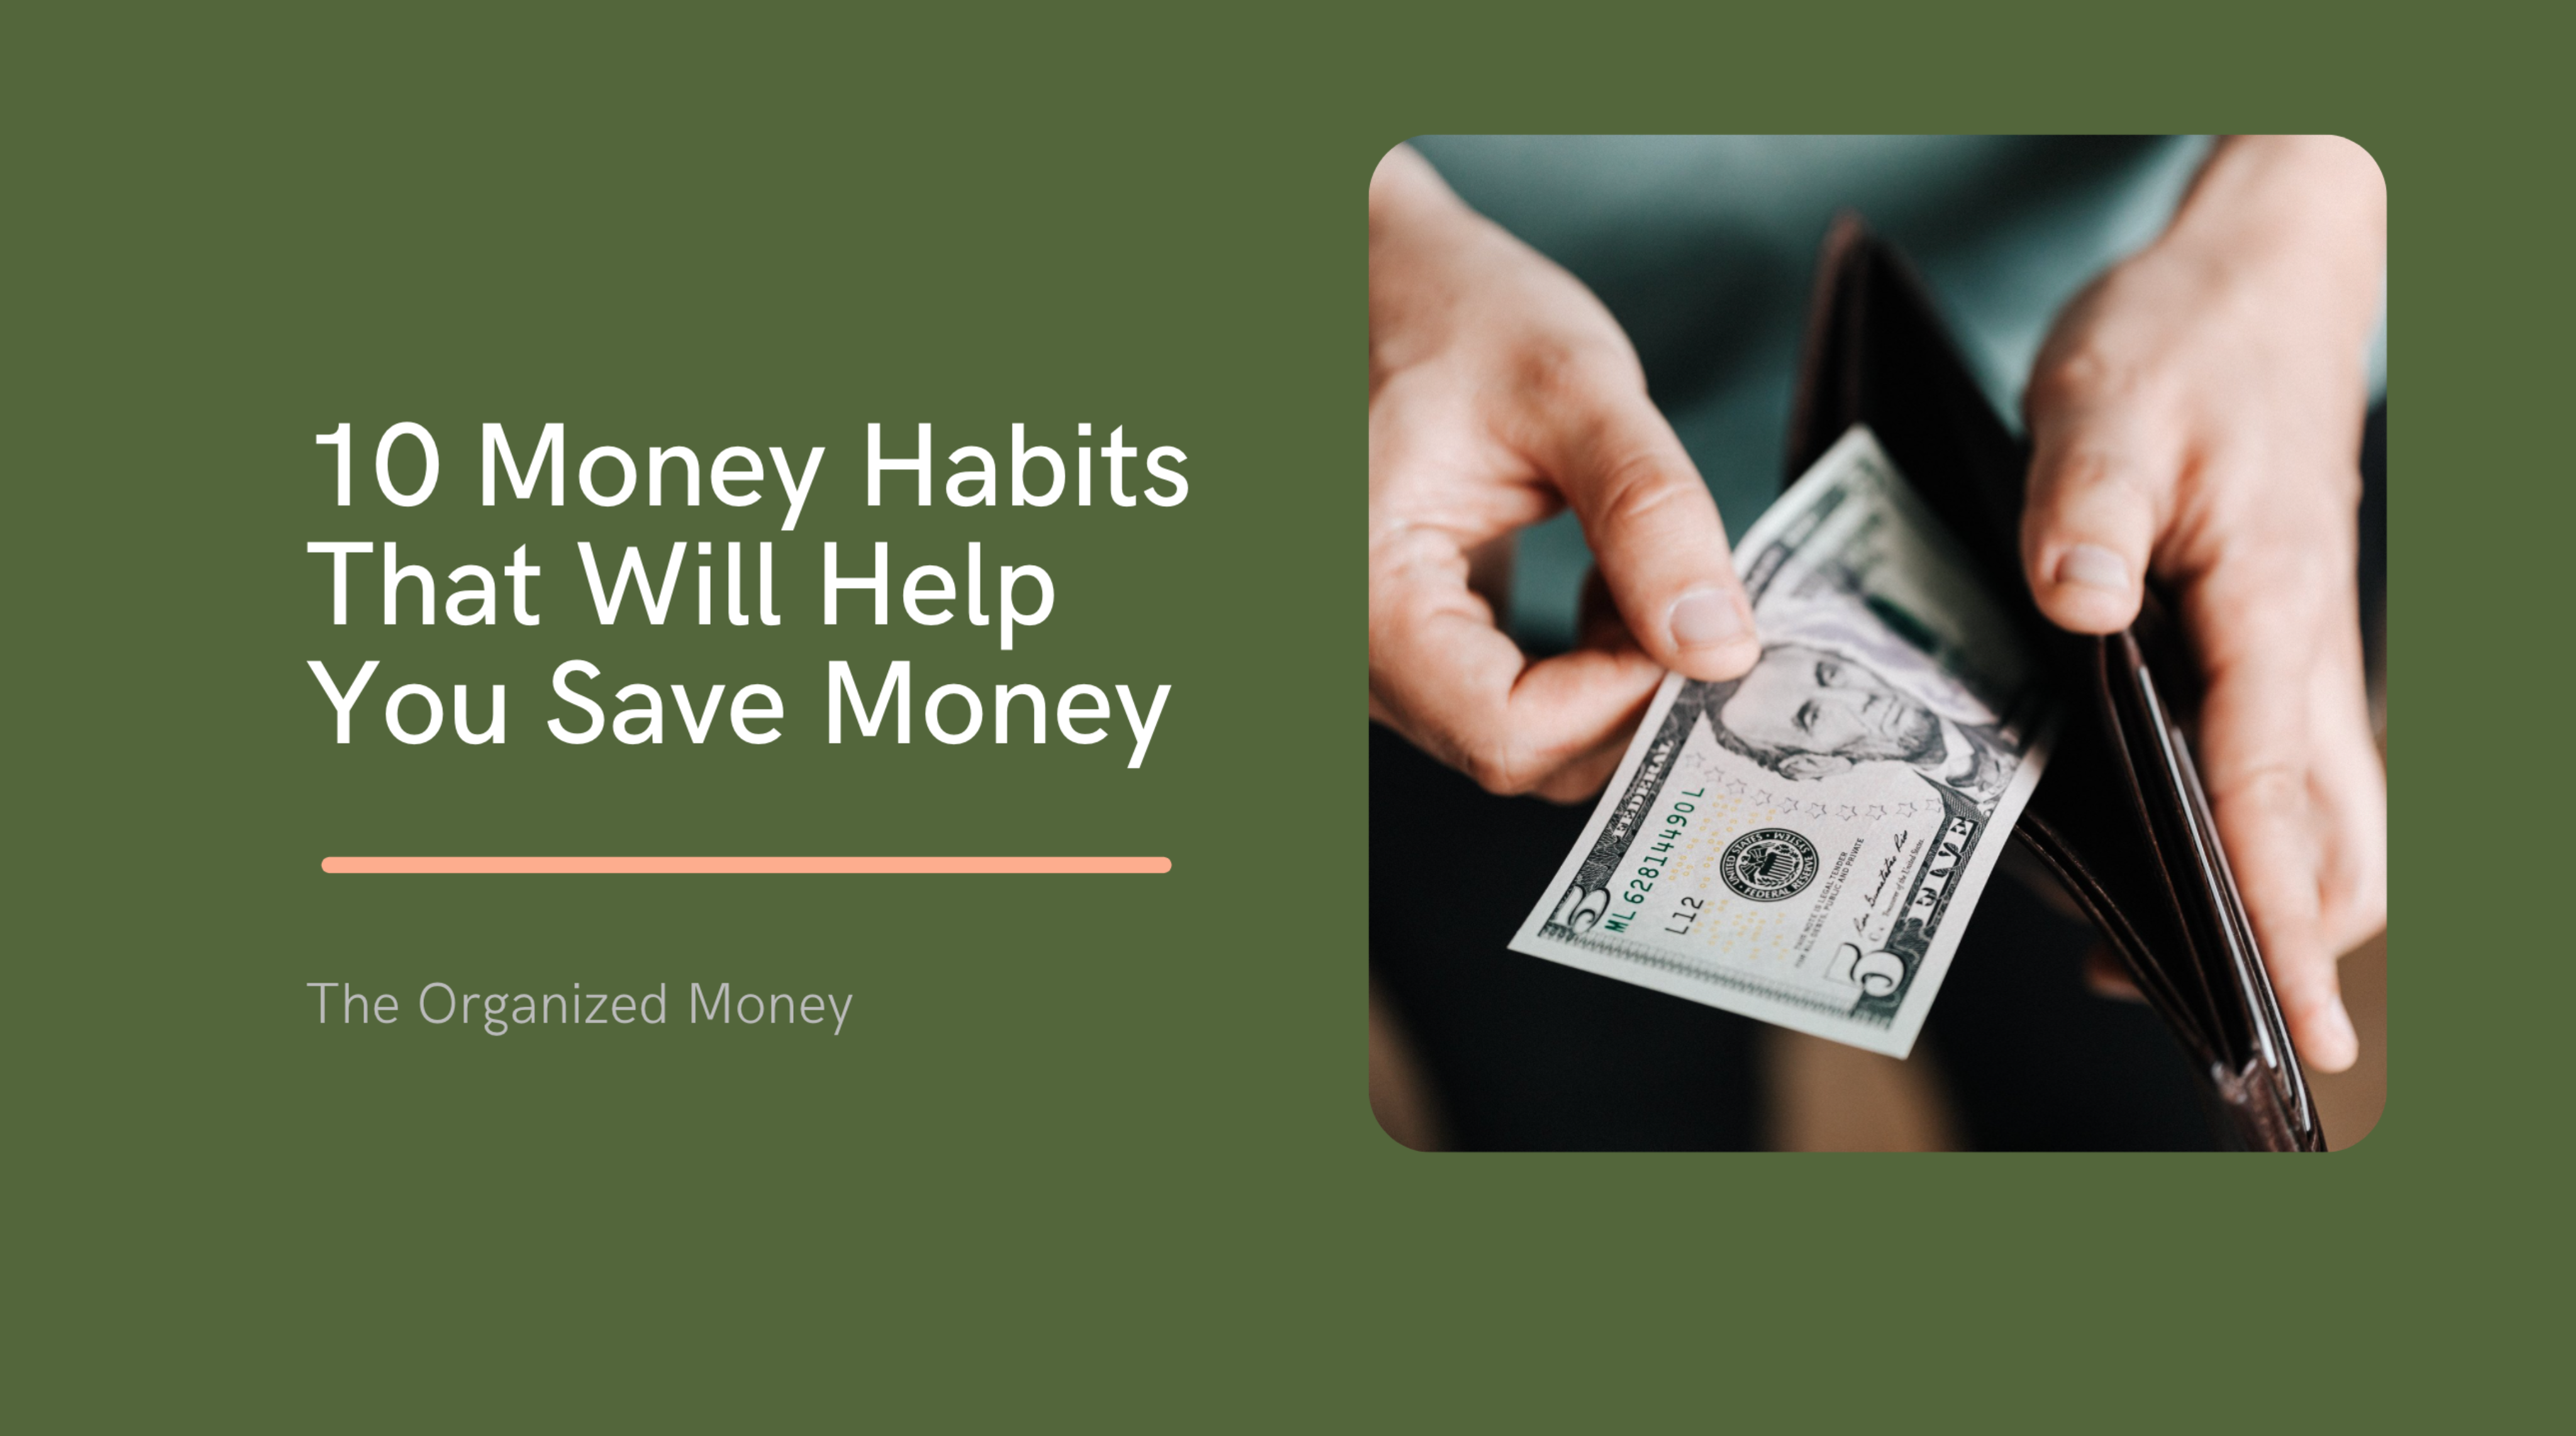 10 Money Habits That Can Help You Save Money